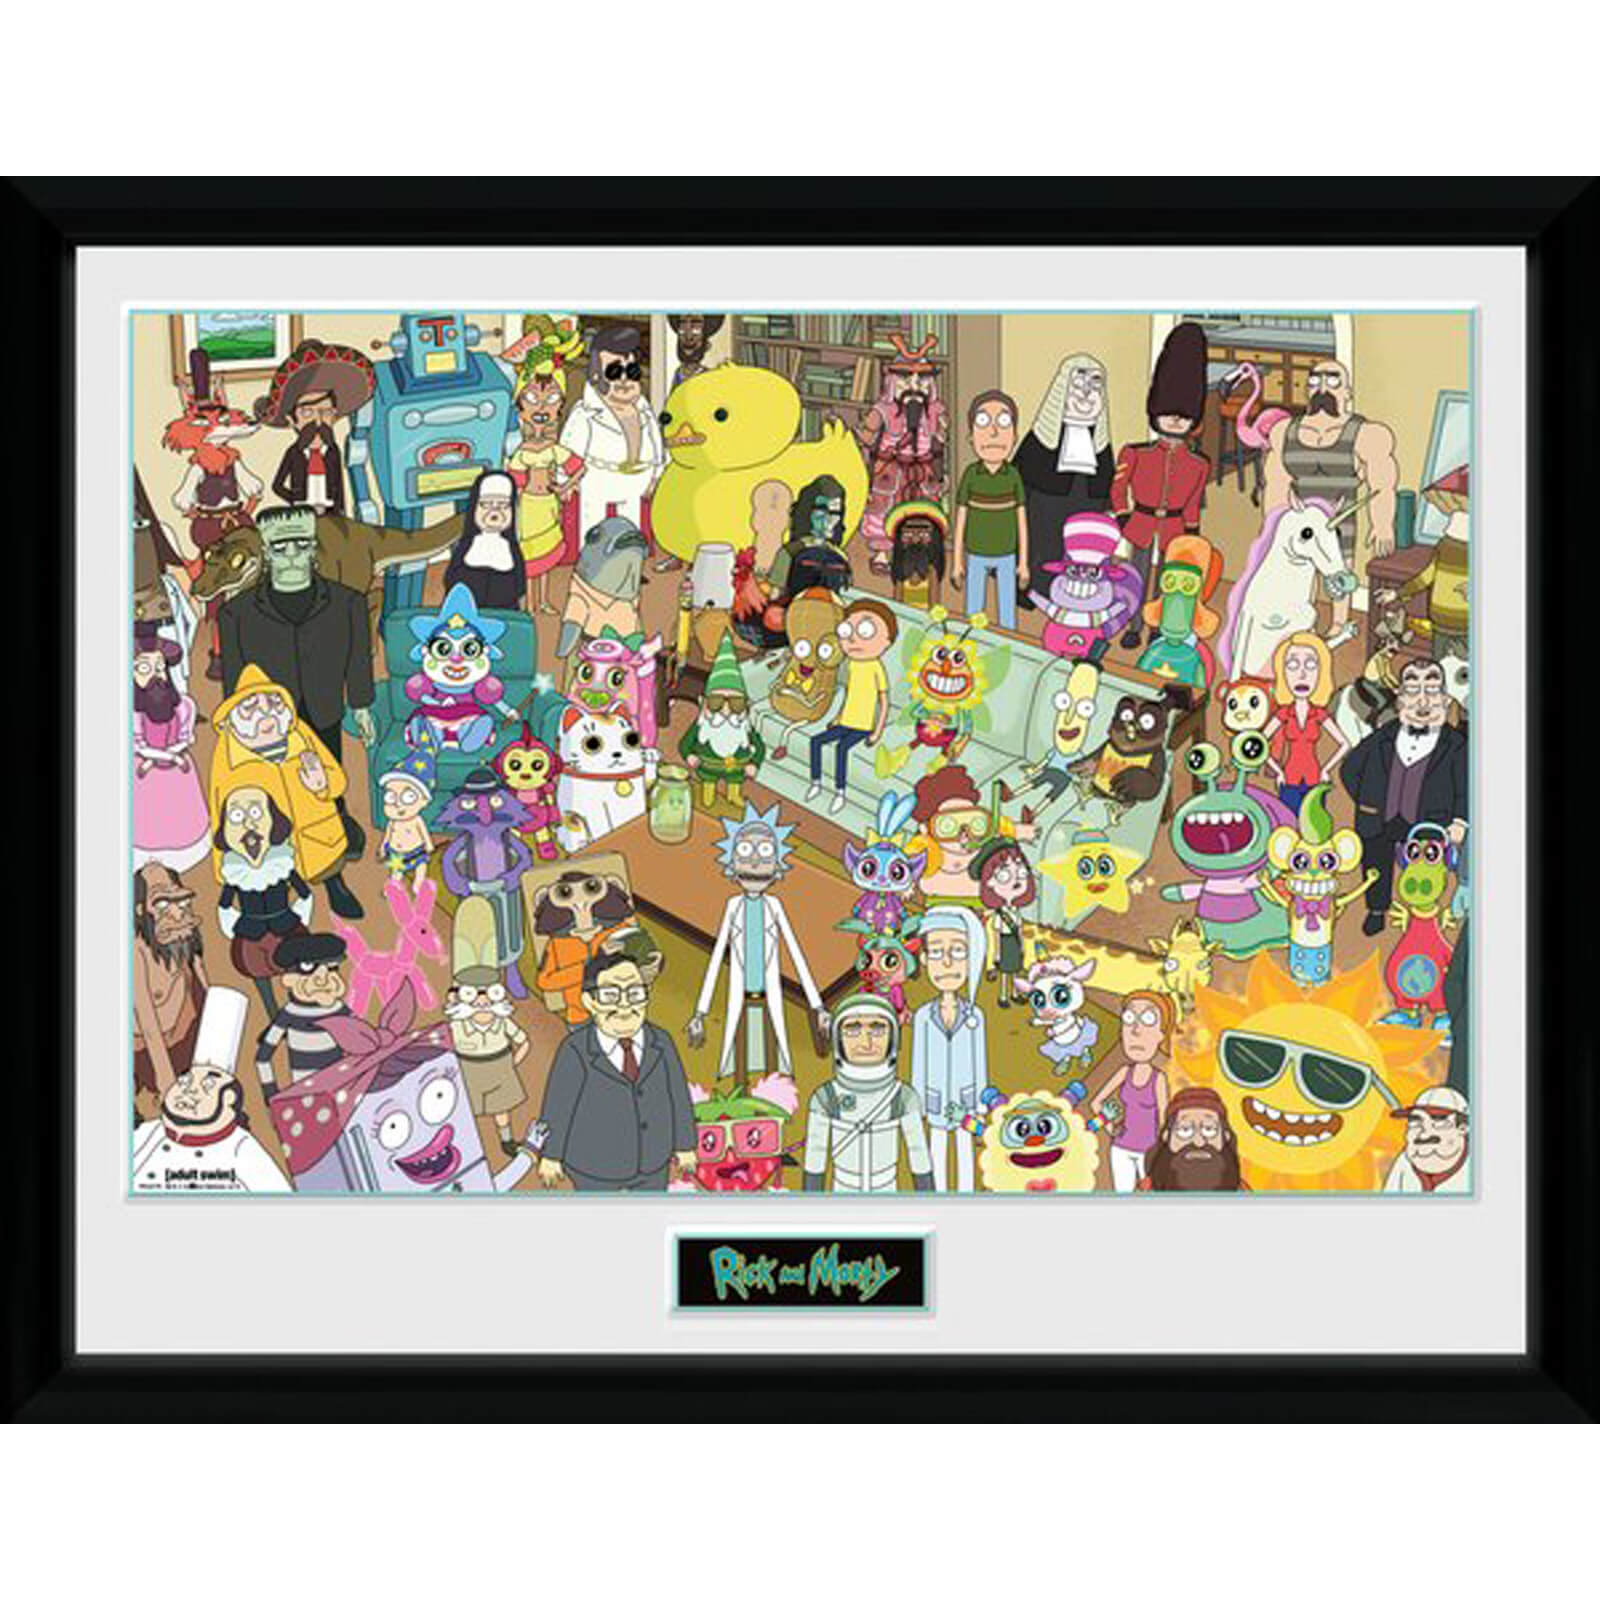 Rick and Morty Total Rickall 12 x 16 Inches Framed Photograph